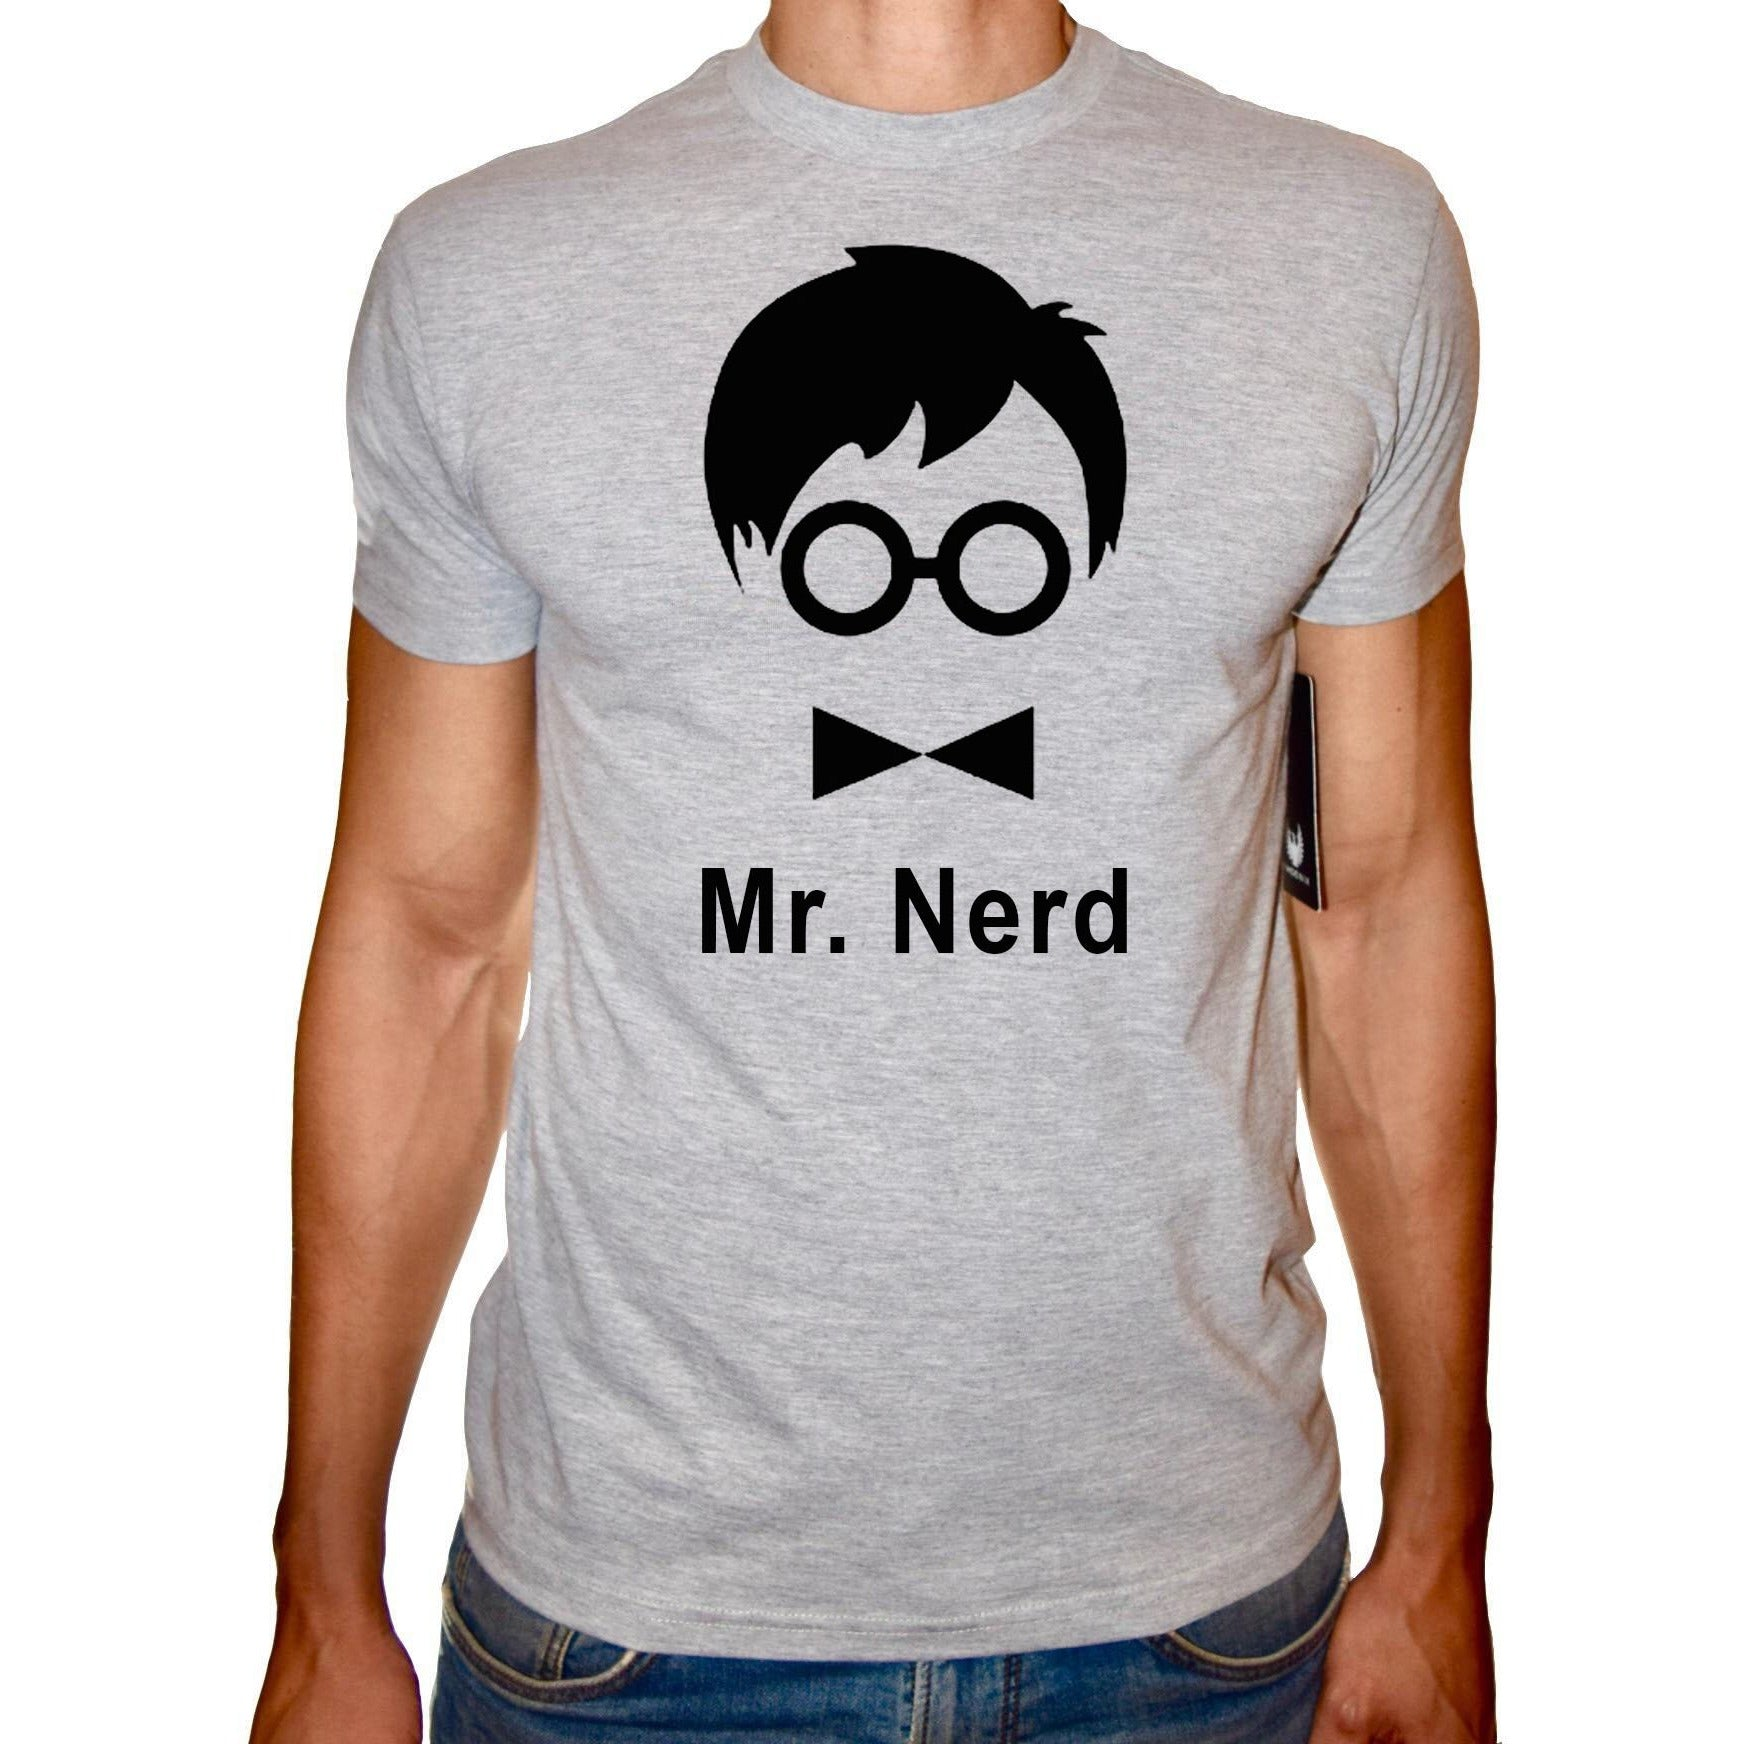 Phoenix GREY Round Neck Printed T-Shirt Men (Mr. nerd )